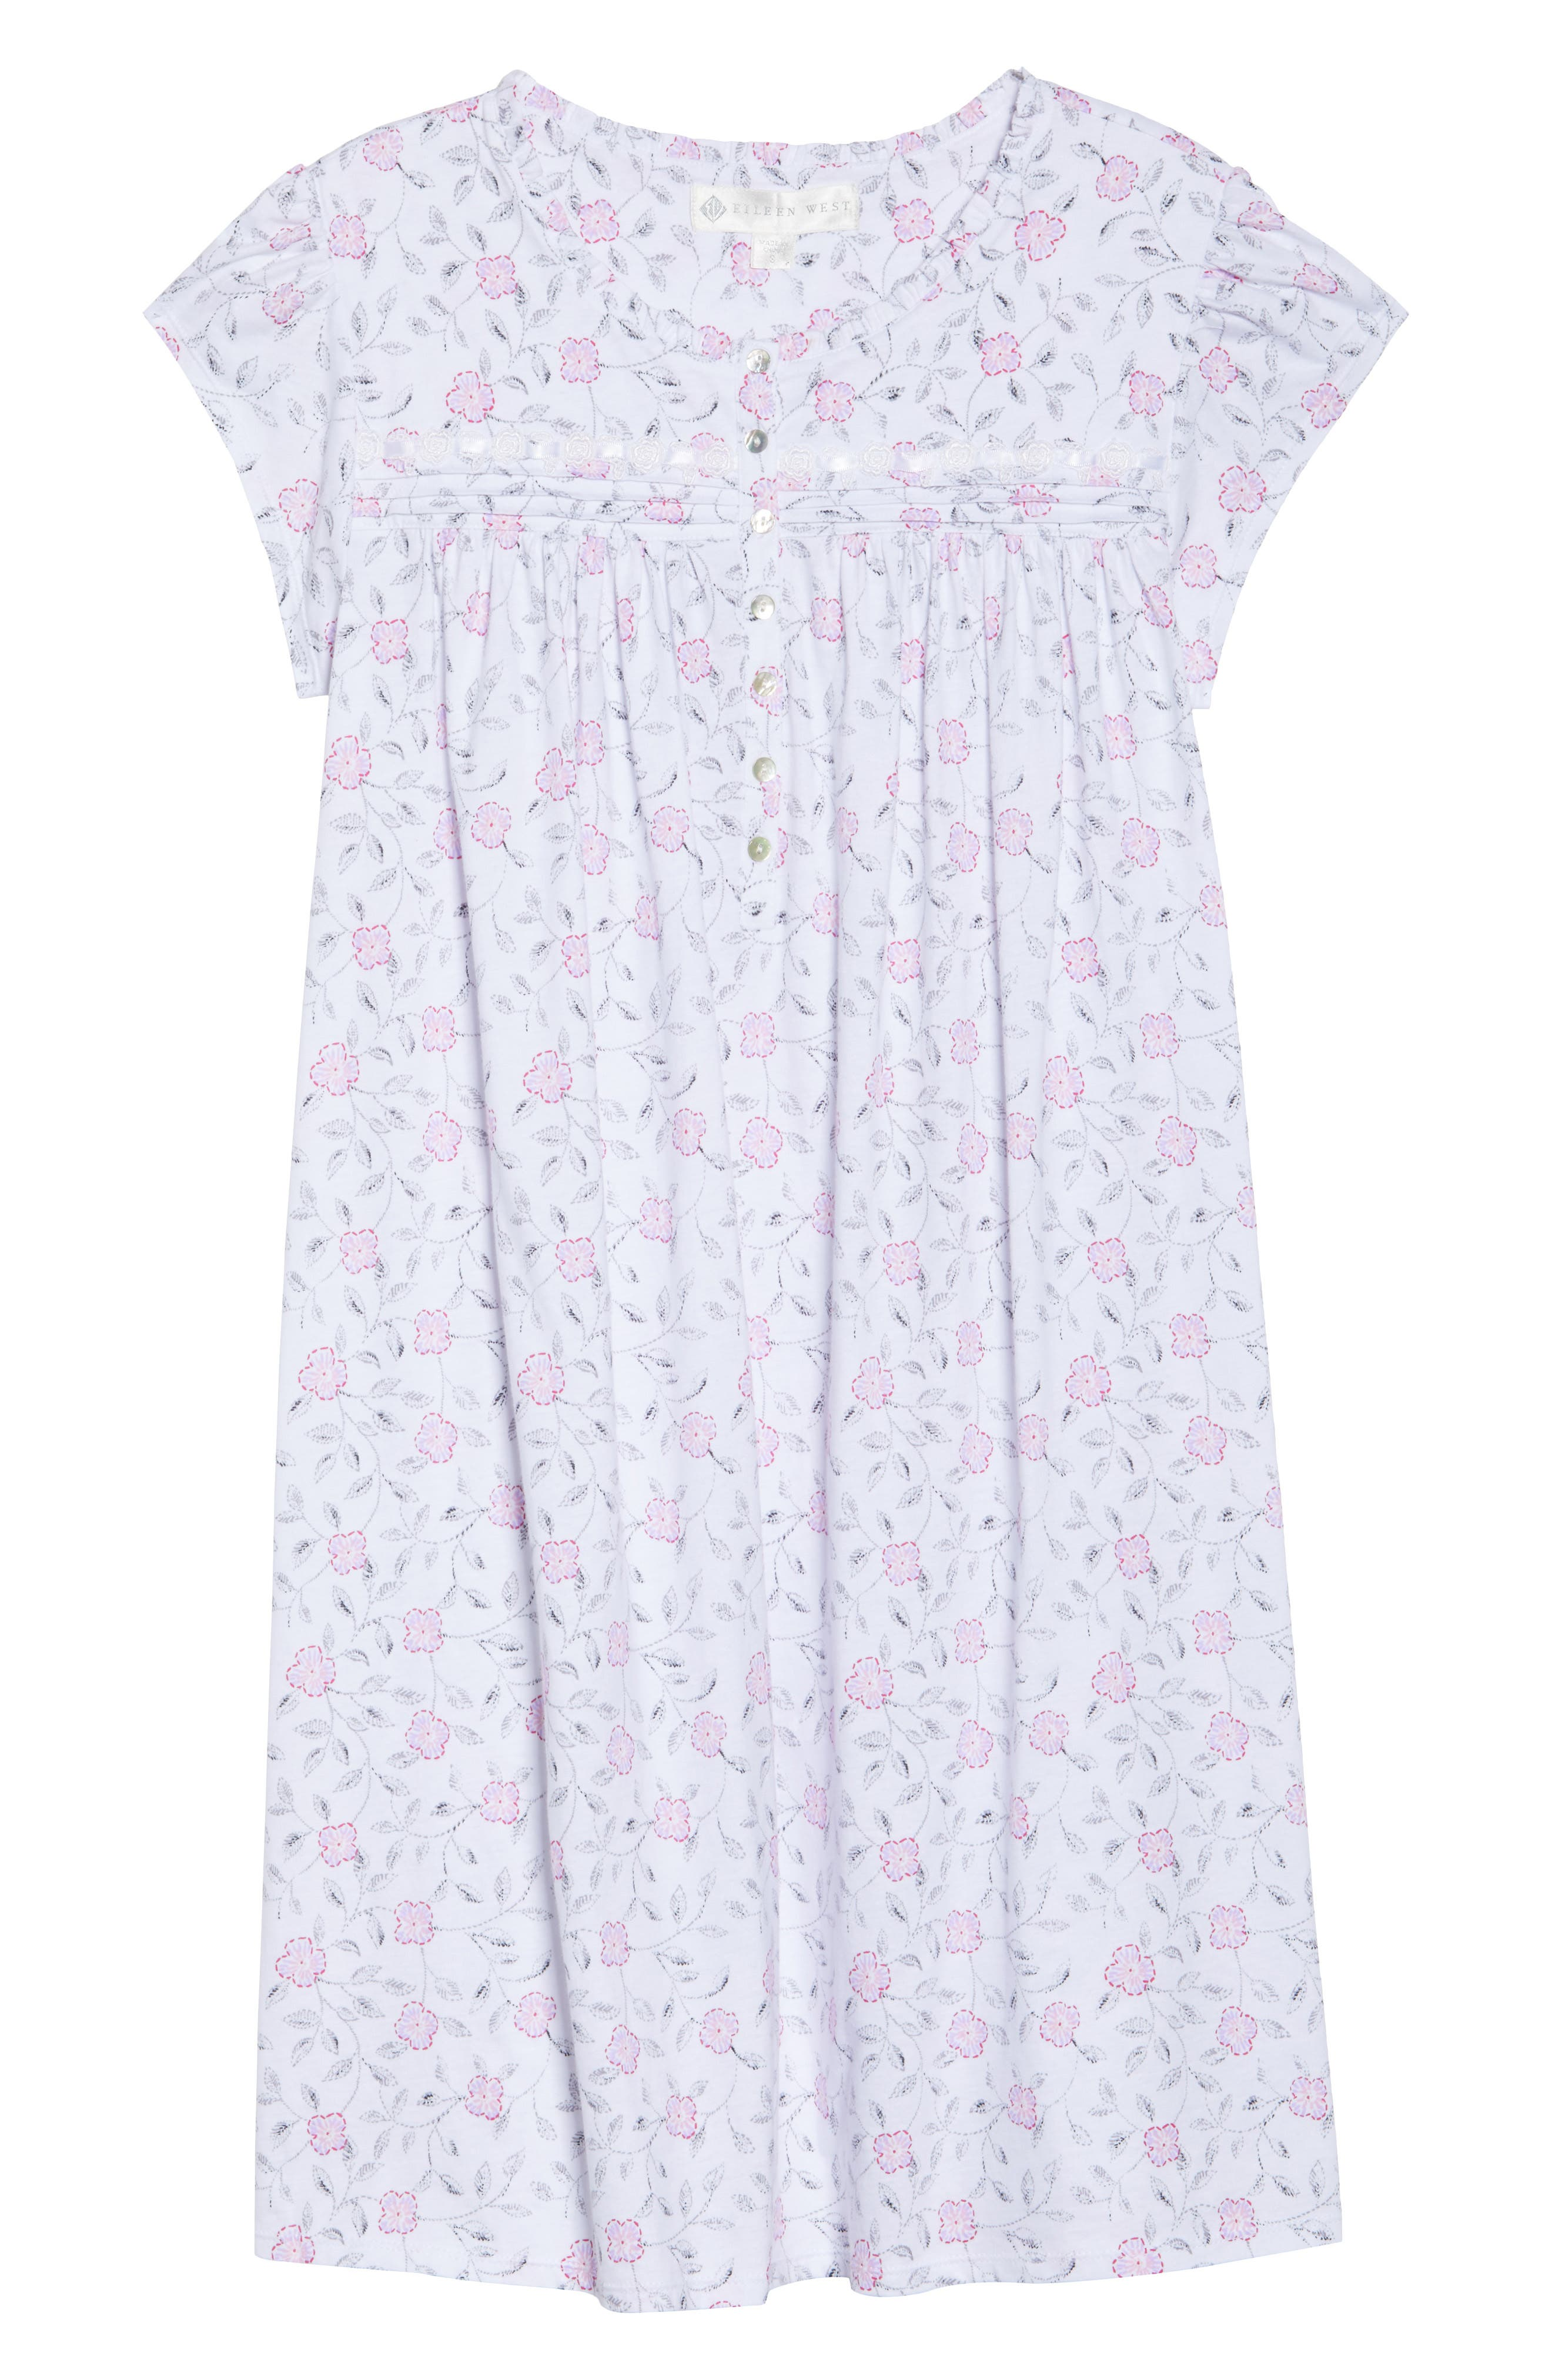 Cotton Jersey Nightgown,                             Alternate thumbnail 4, color,                             White Floral Scroll